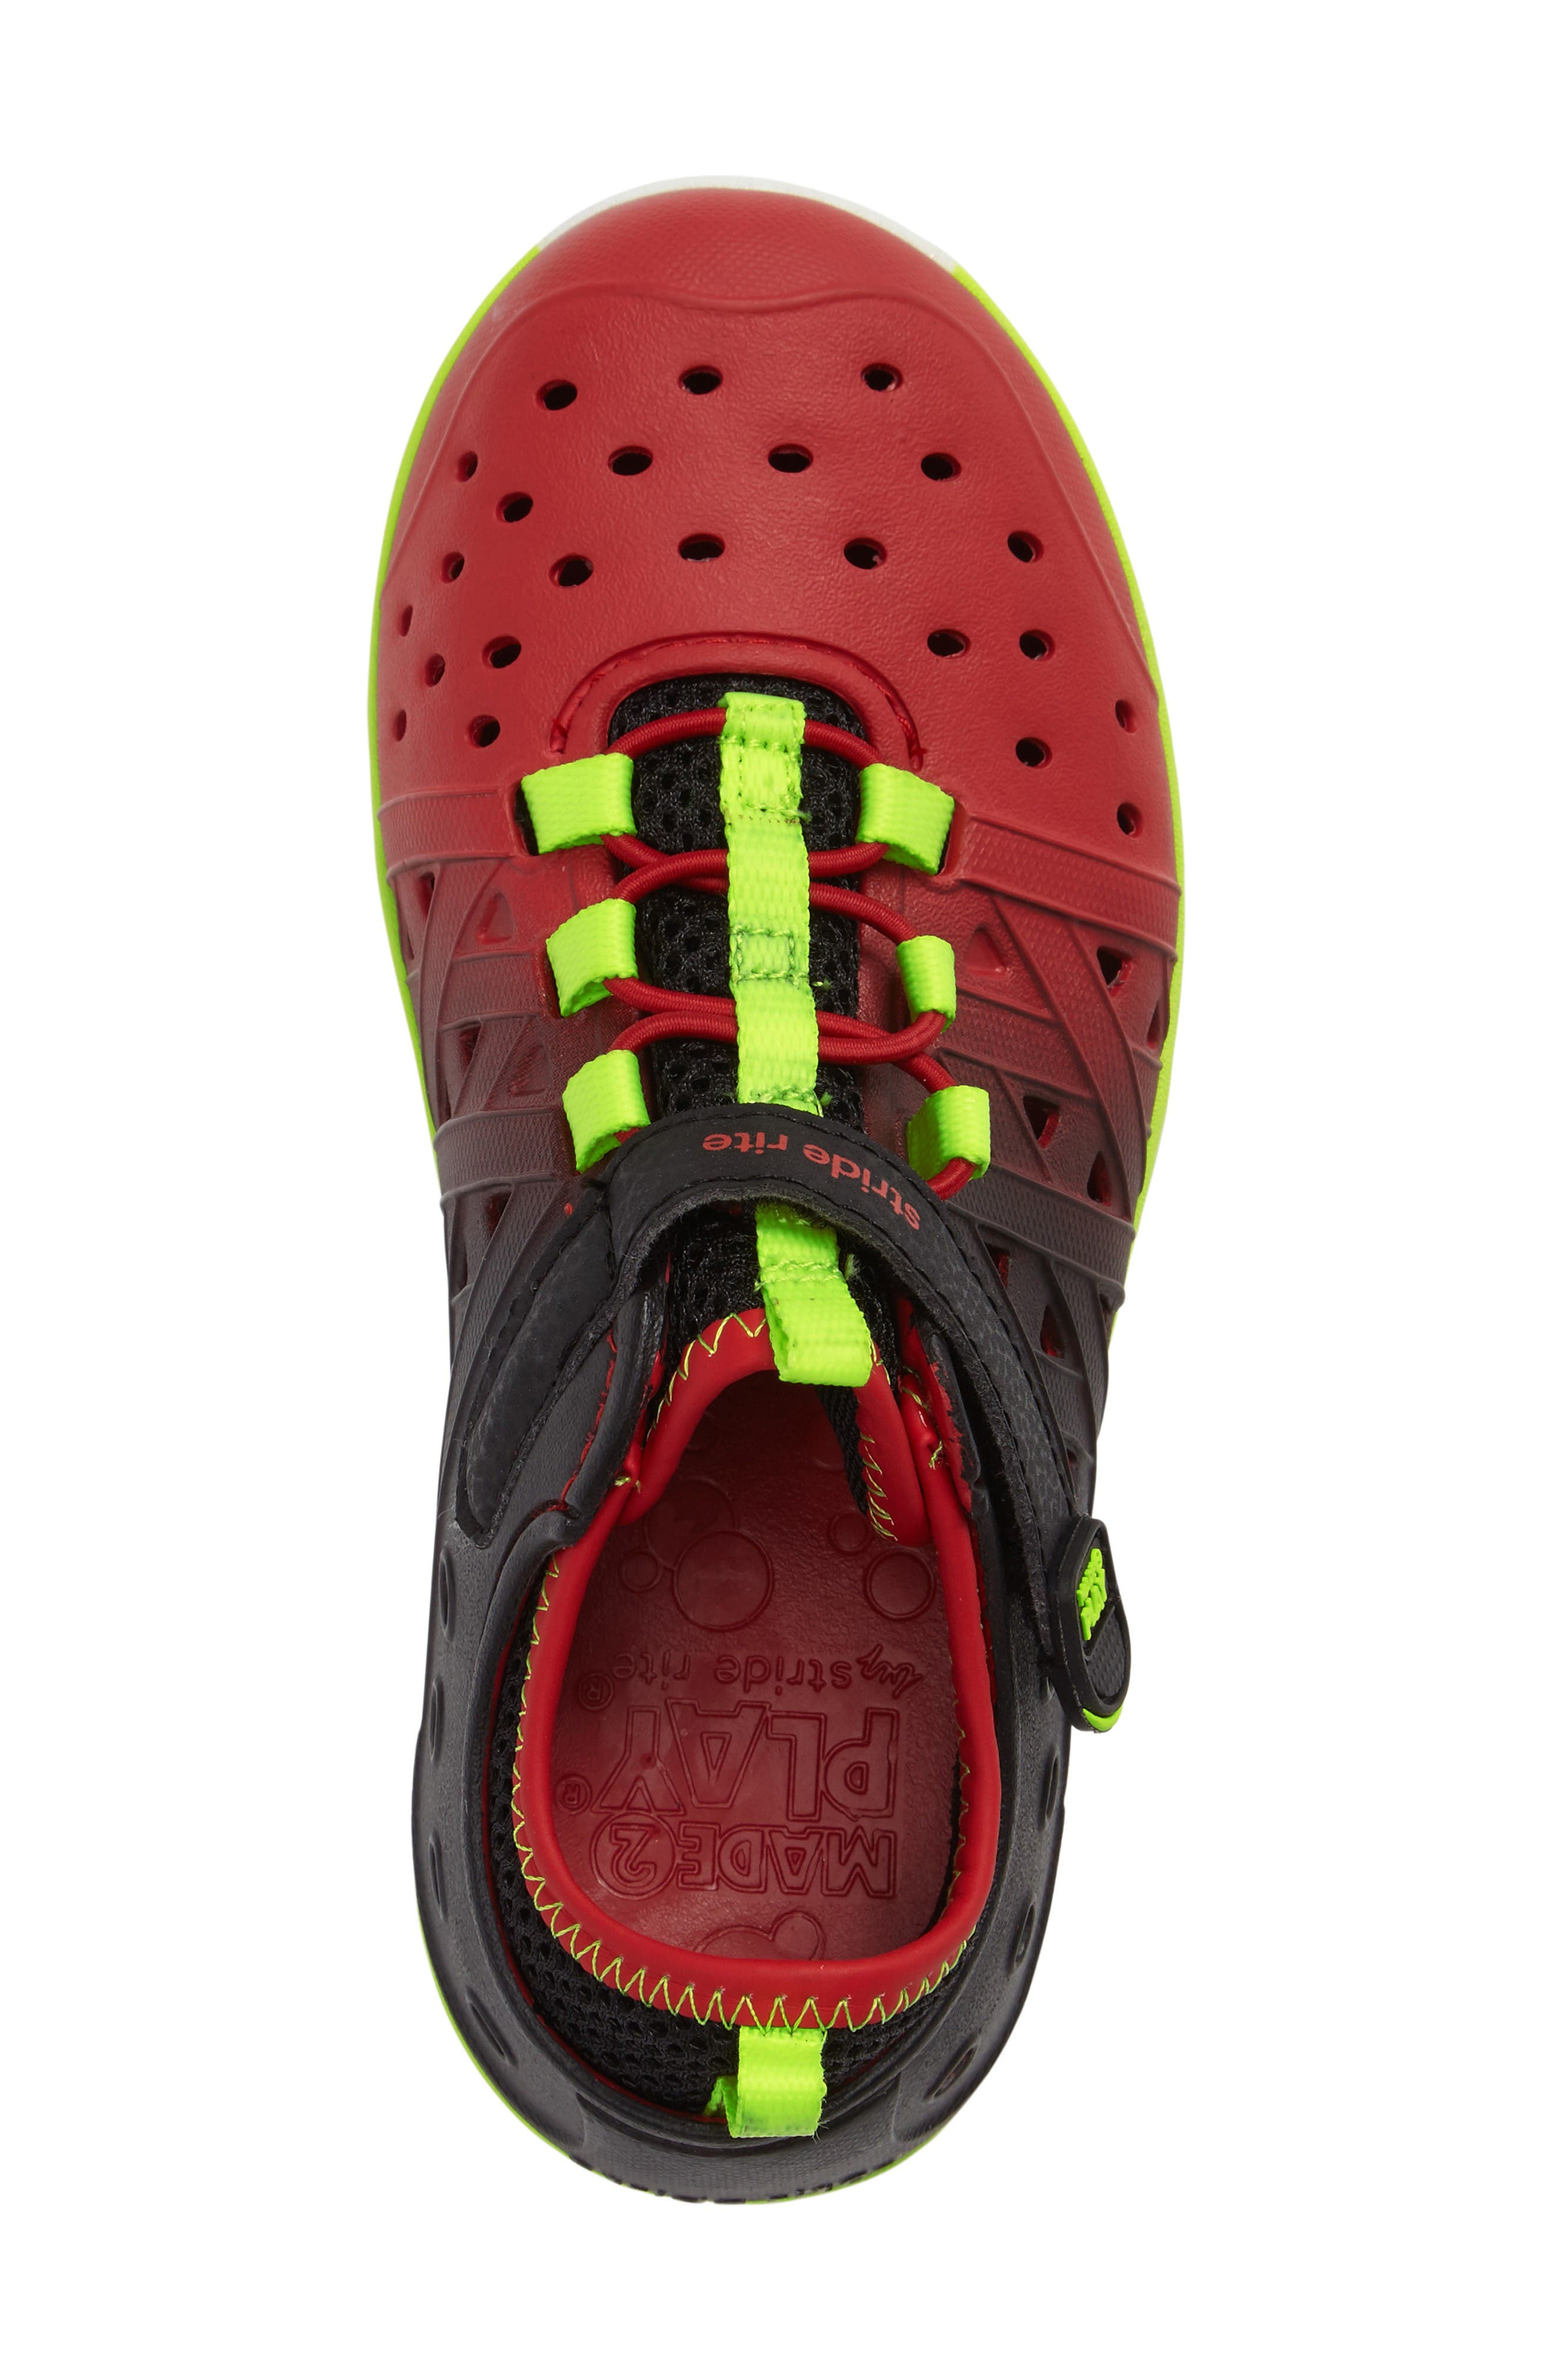 Made2Play<sup>®</sup> Phibian Sneaker,                             Alternate thumbnail 3, color,                             Black/ Red